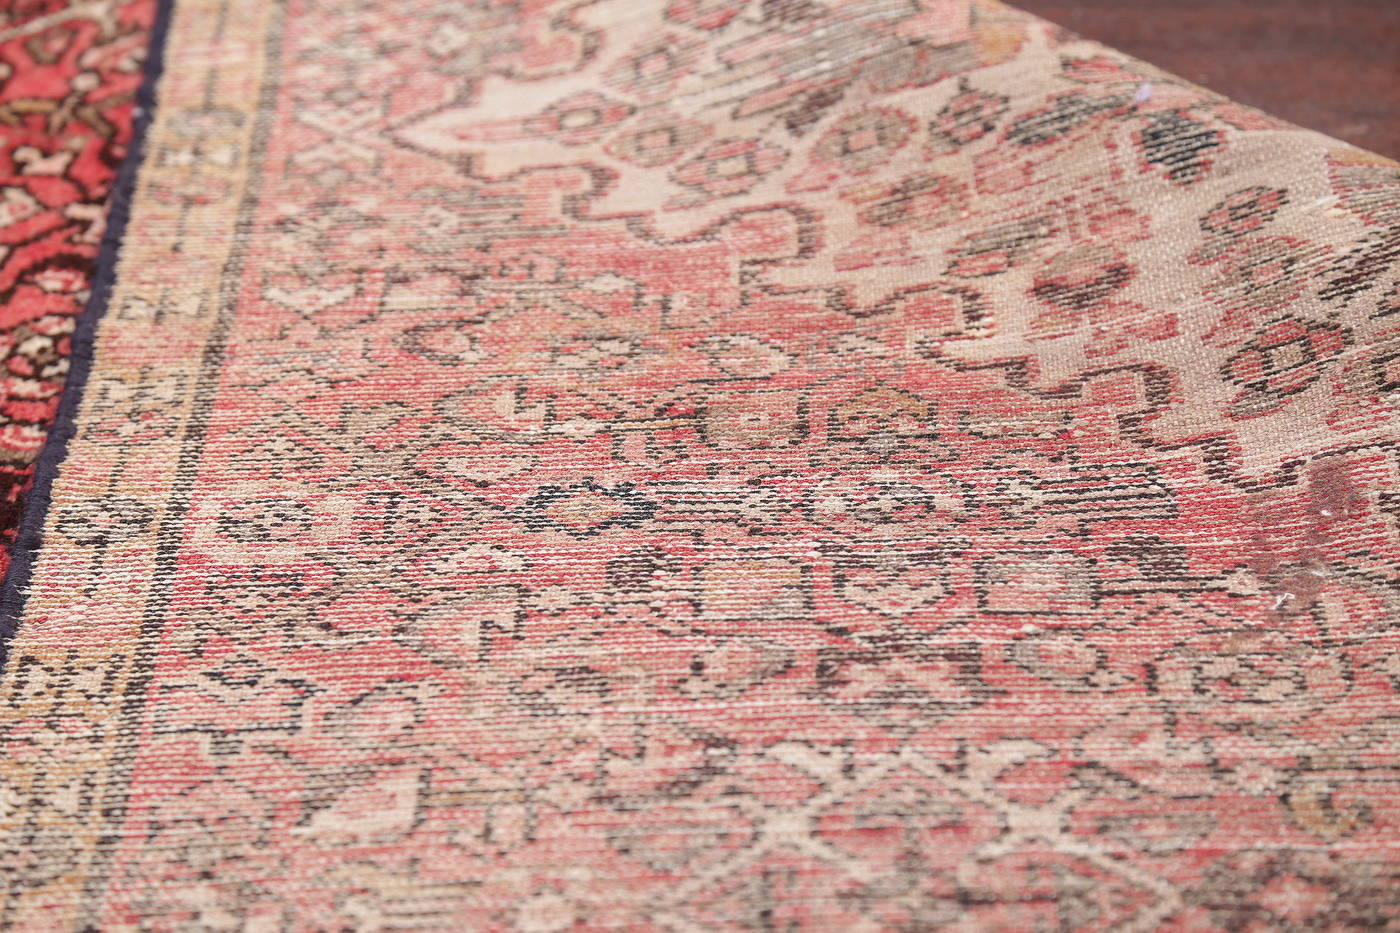 Hand-Knotted Red Hamedan Persian Wool Rug 3x6